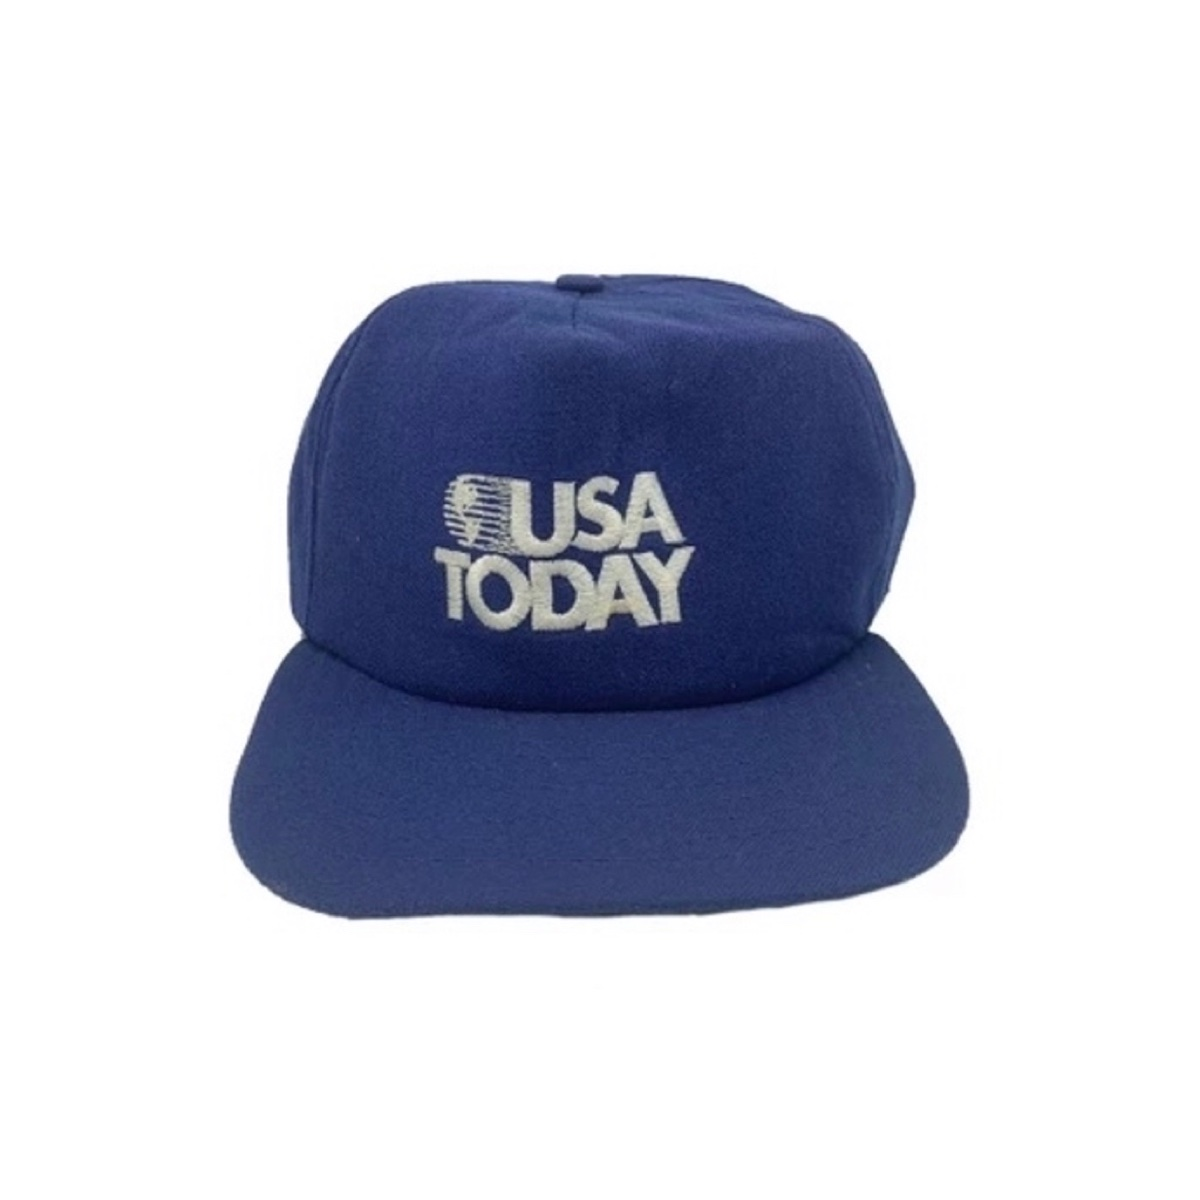 Vintage 80s USA Today New Era Snapback